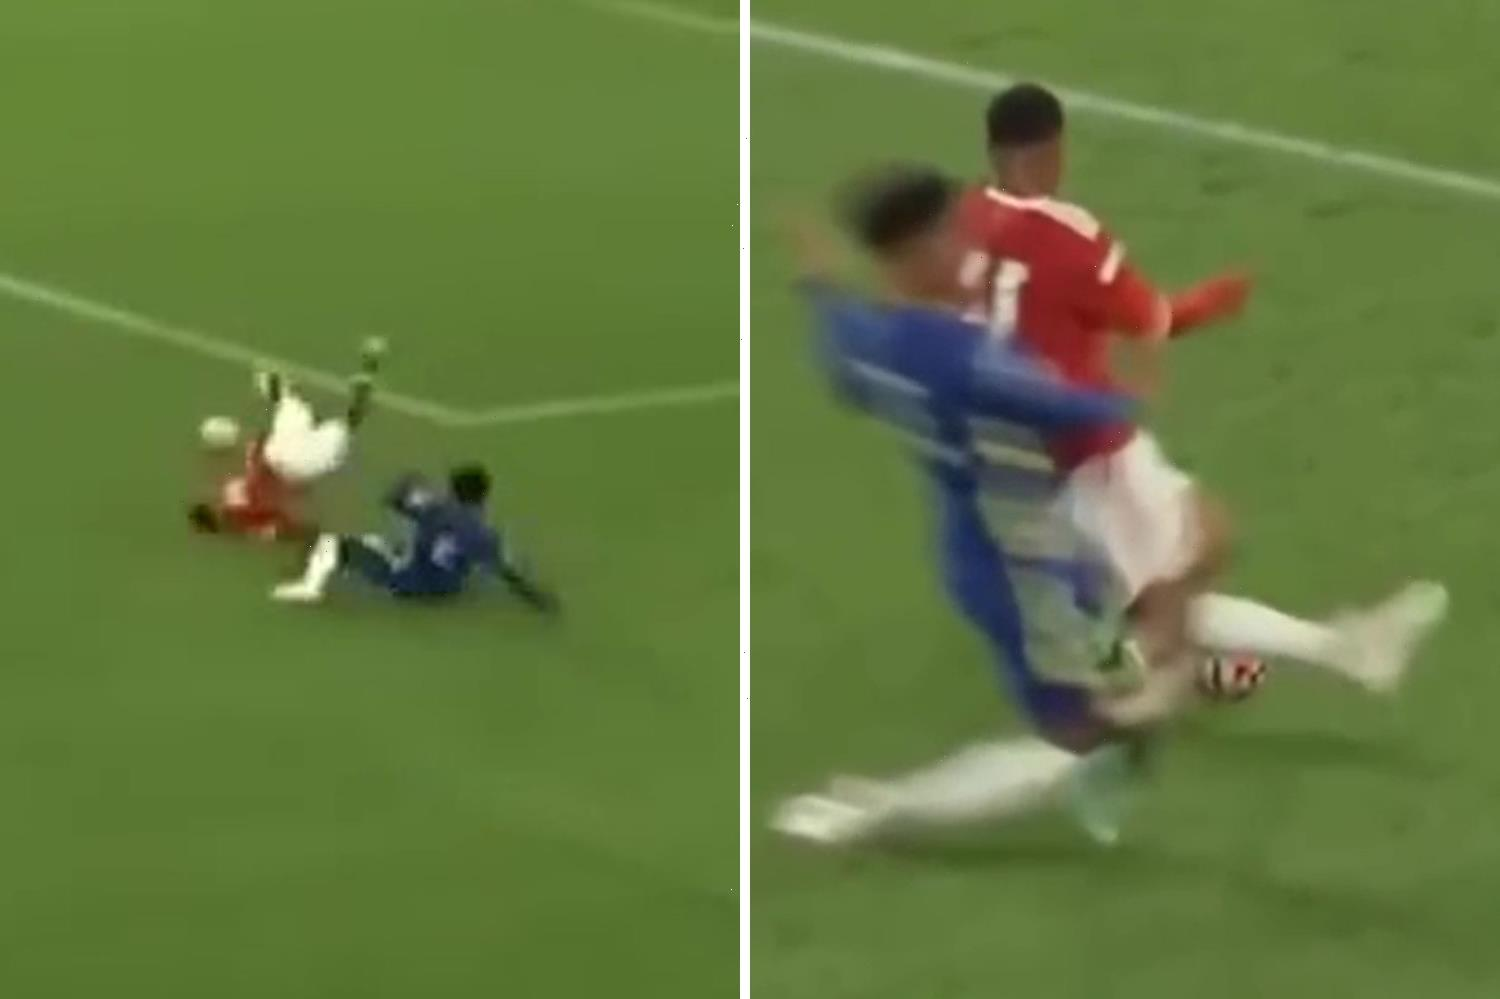 Chelsea youngster Josh Brooking sent off for horror tackle against Man Utd in Under-23s showdown